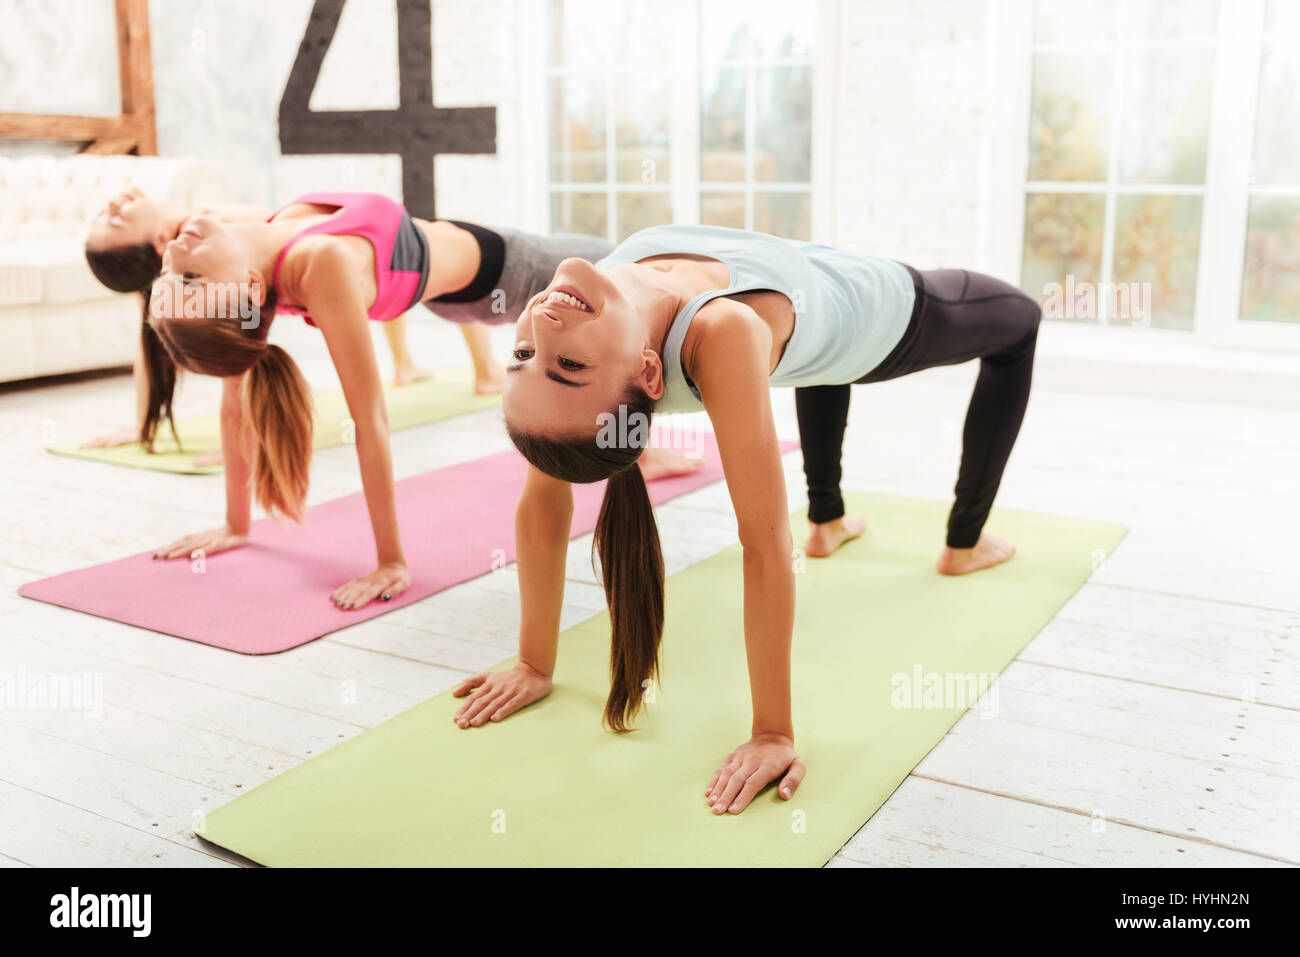 Smiling women doing gymnastic exercises. - Stock Image